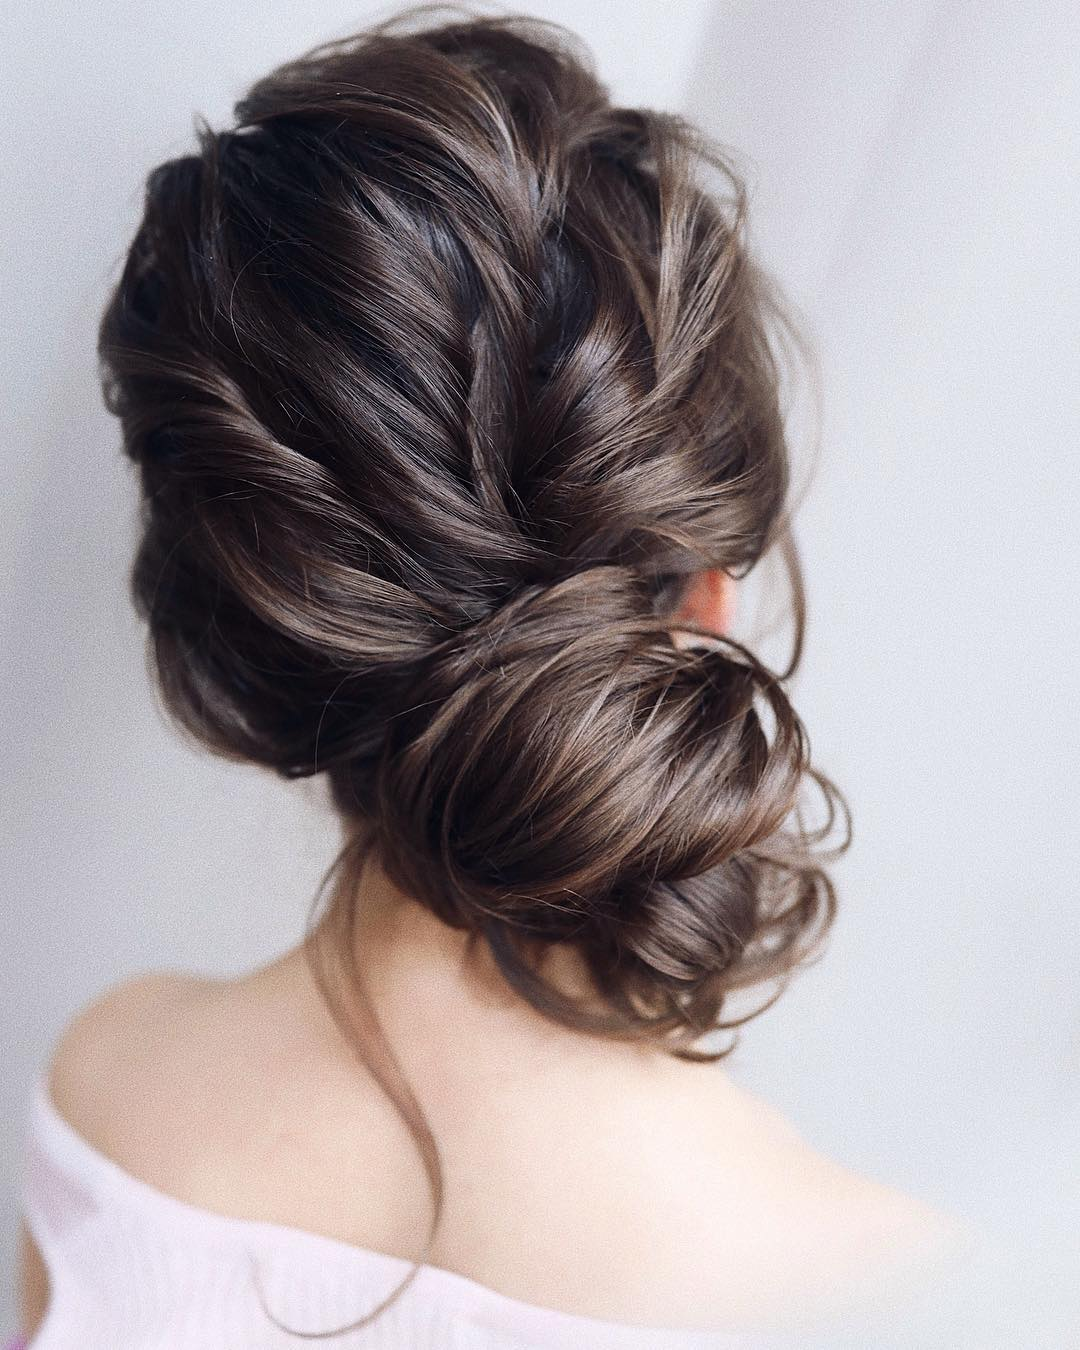 Woman with dark brown hair styled into a messy side bun